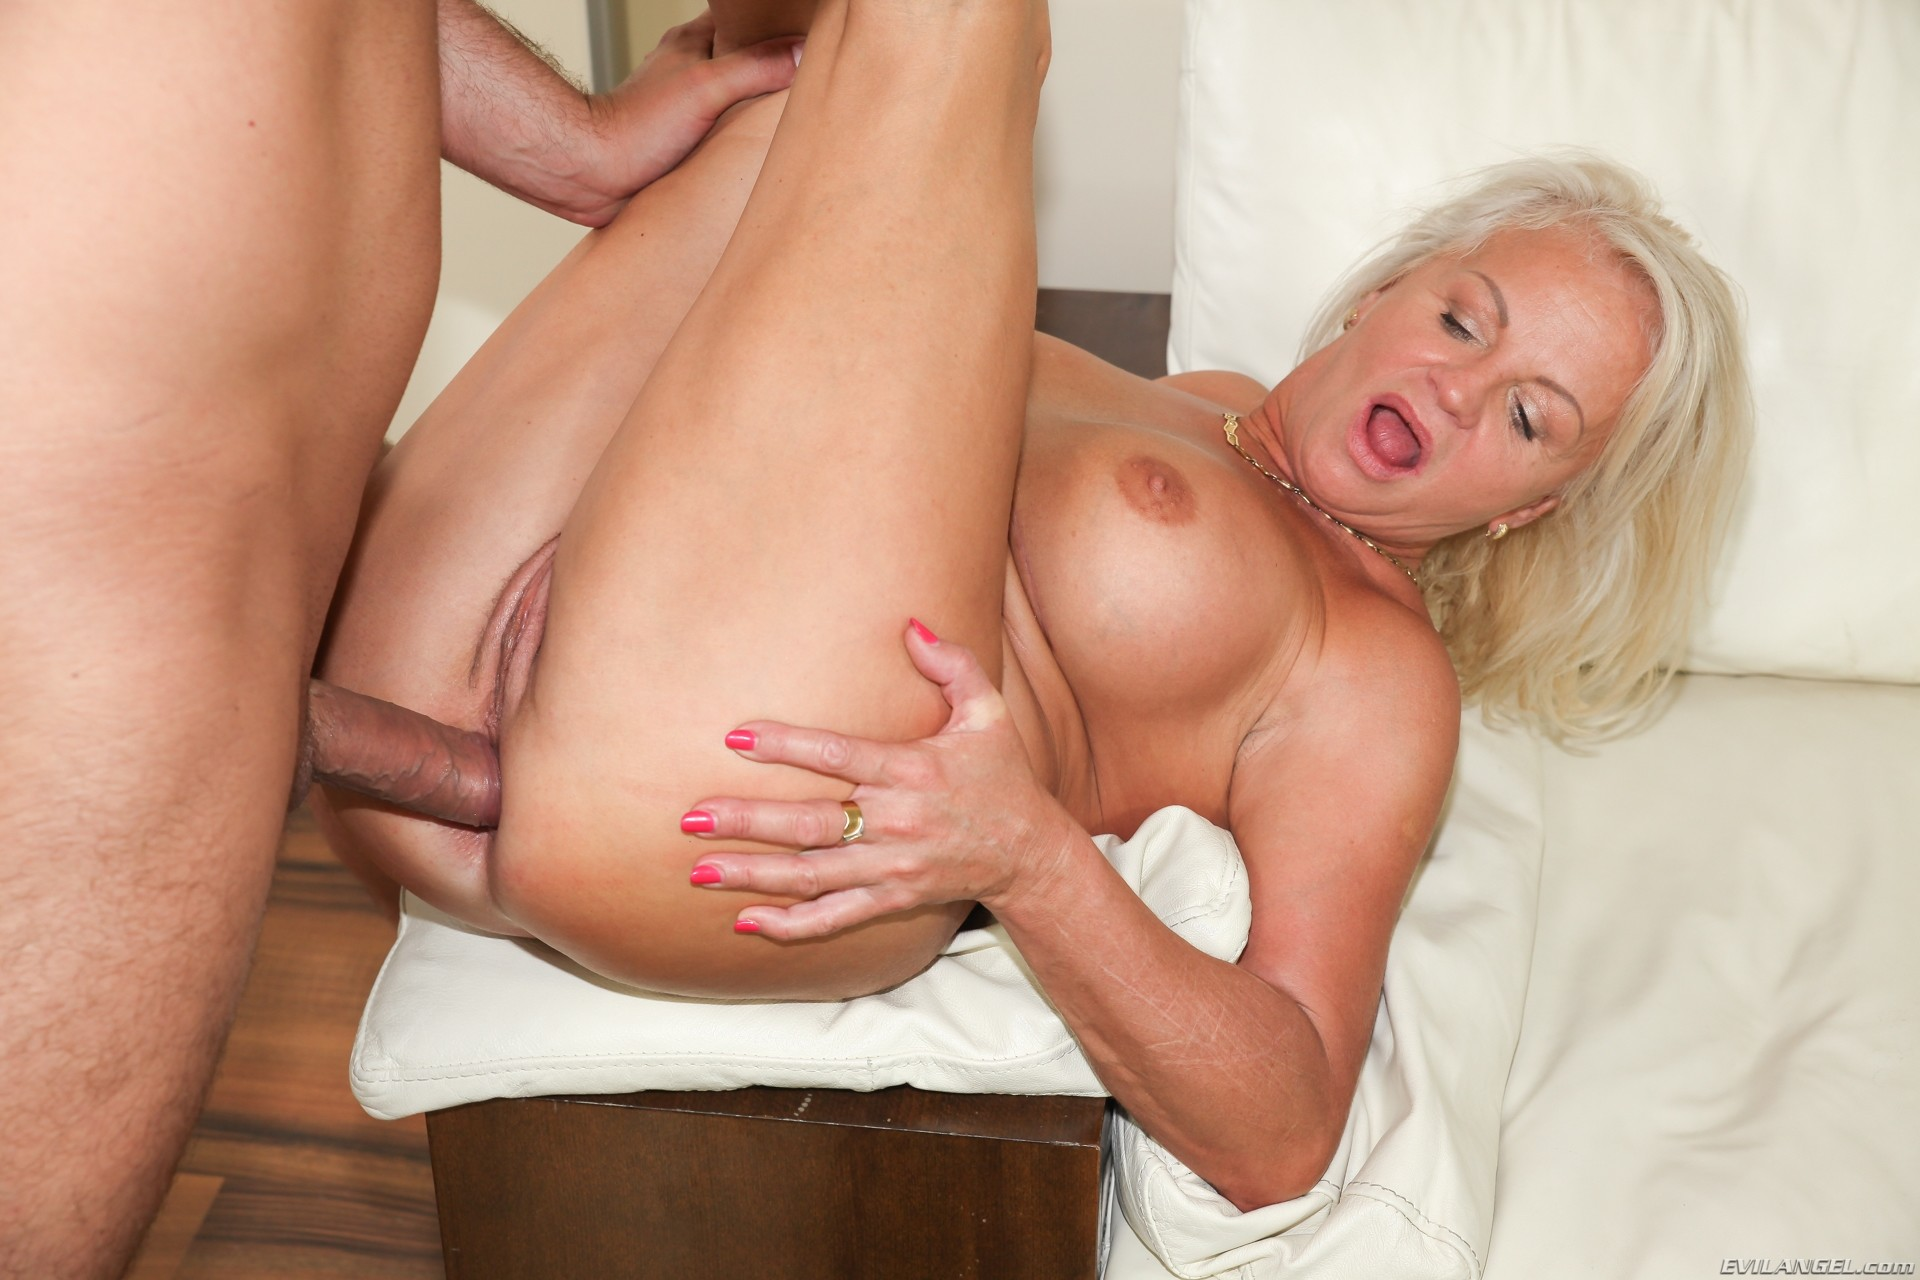 Mature anal xxx and mom porn pics